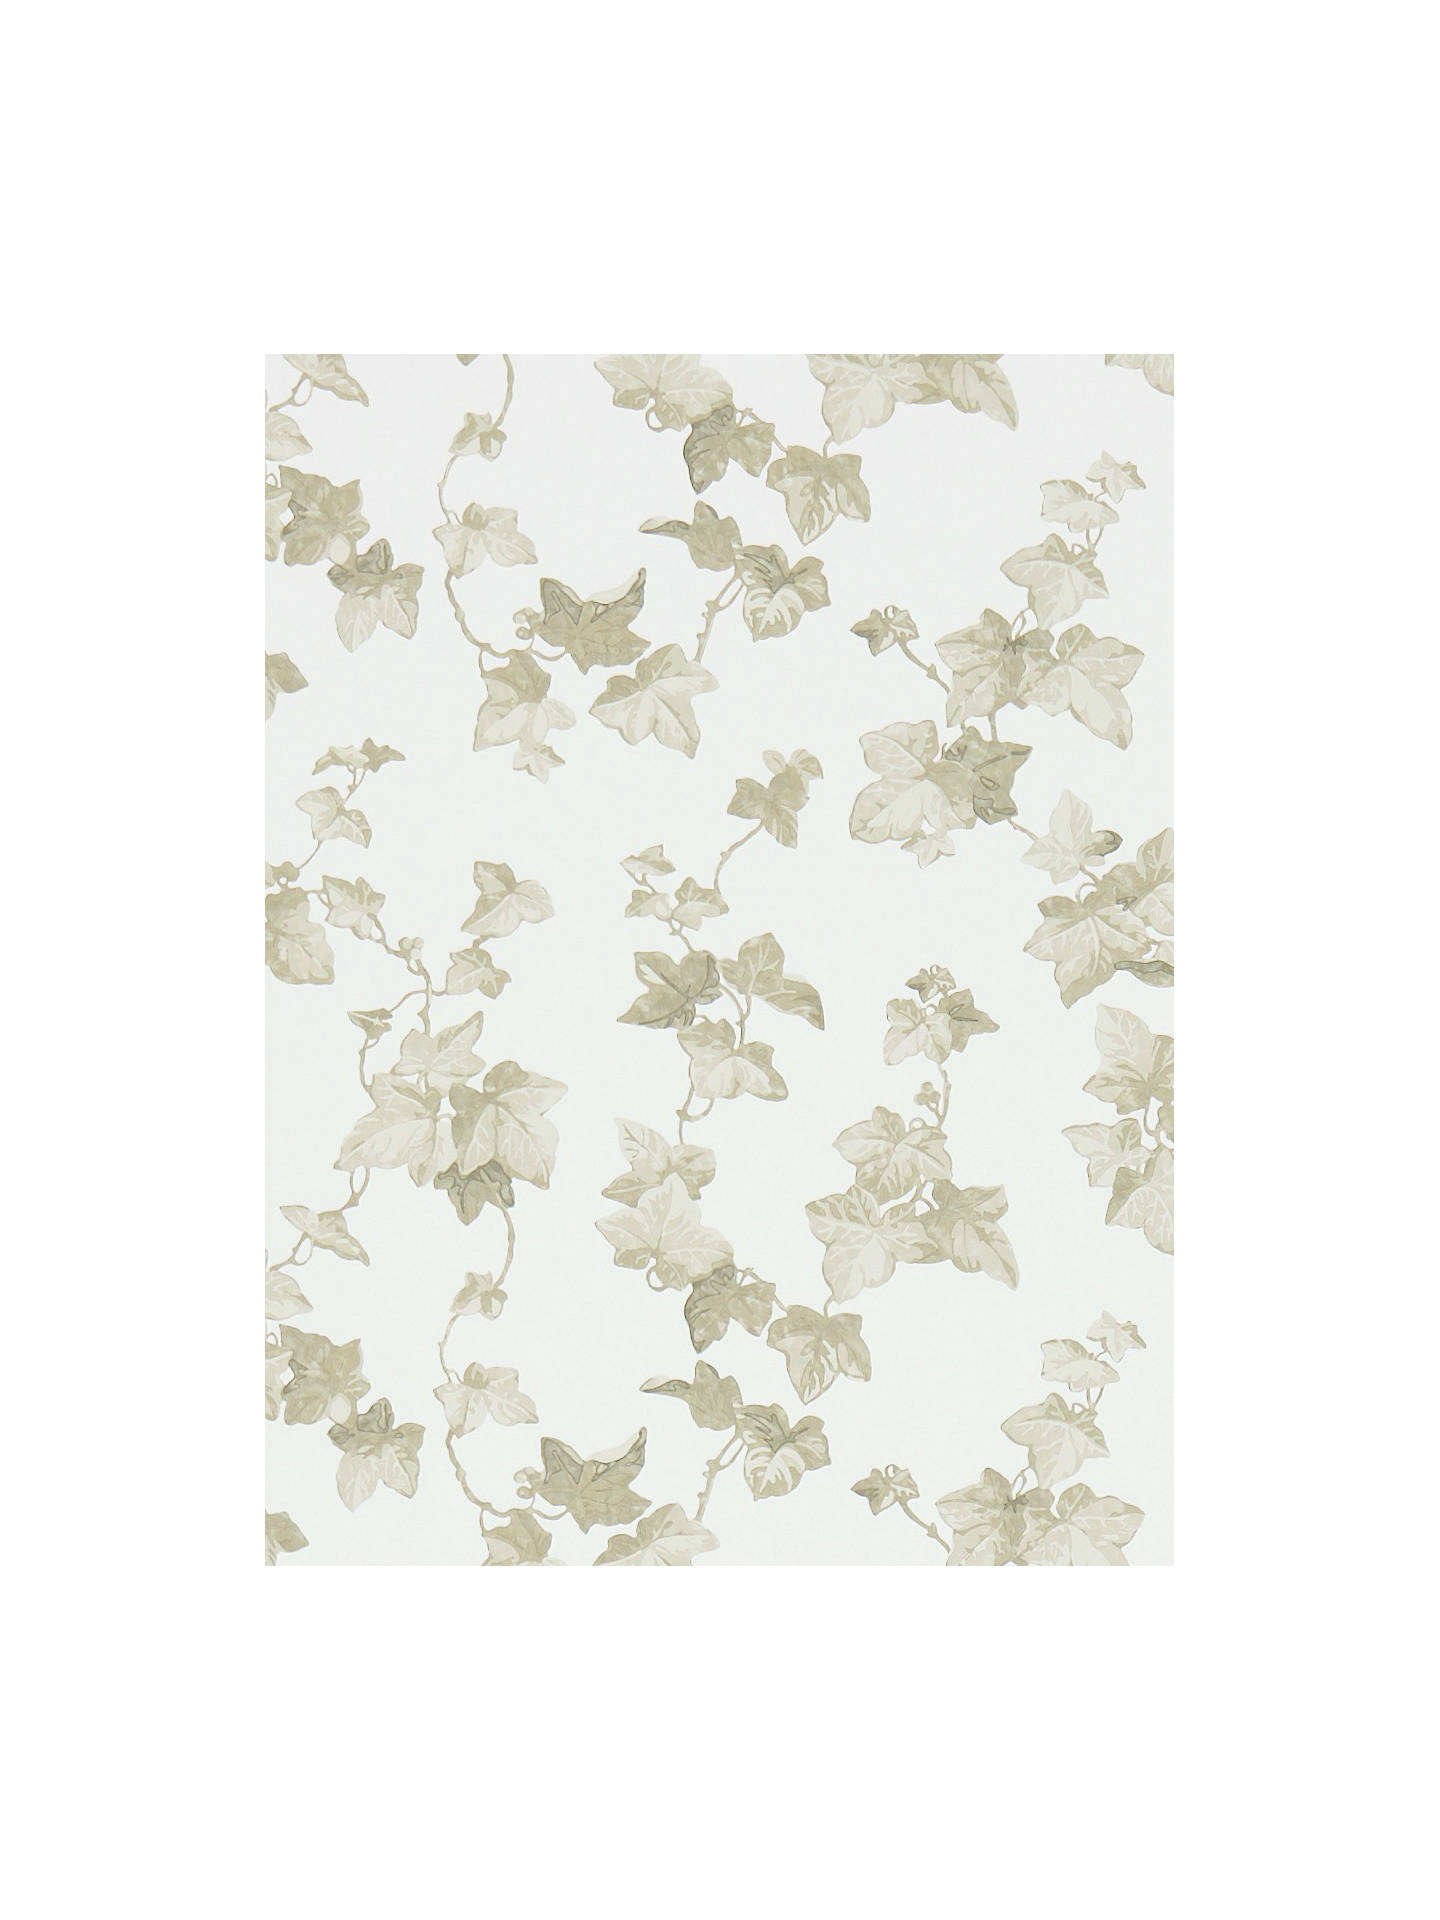 BuySanderson Hedera Wallpaper, Pearl, DVIN214595 Online at johnlewis.com